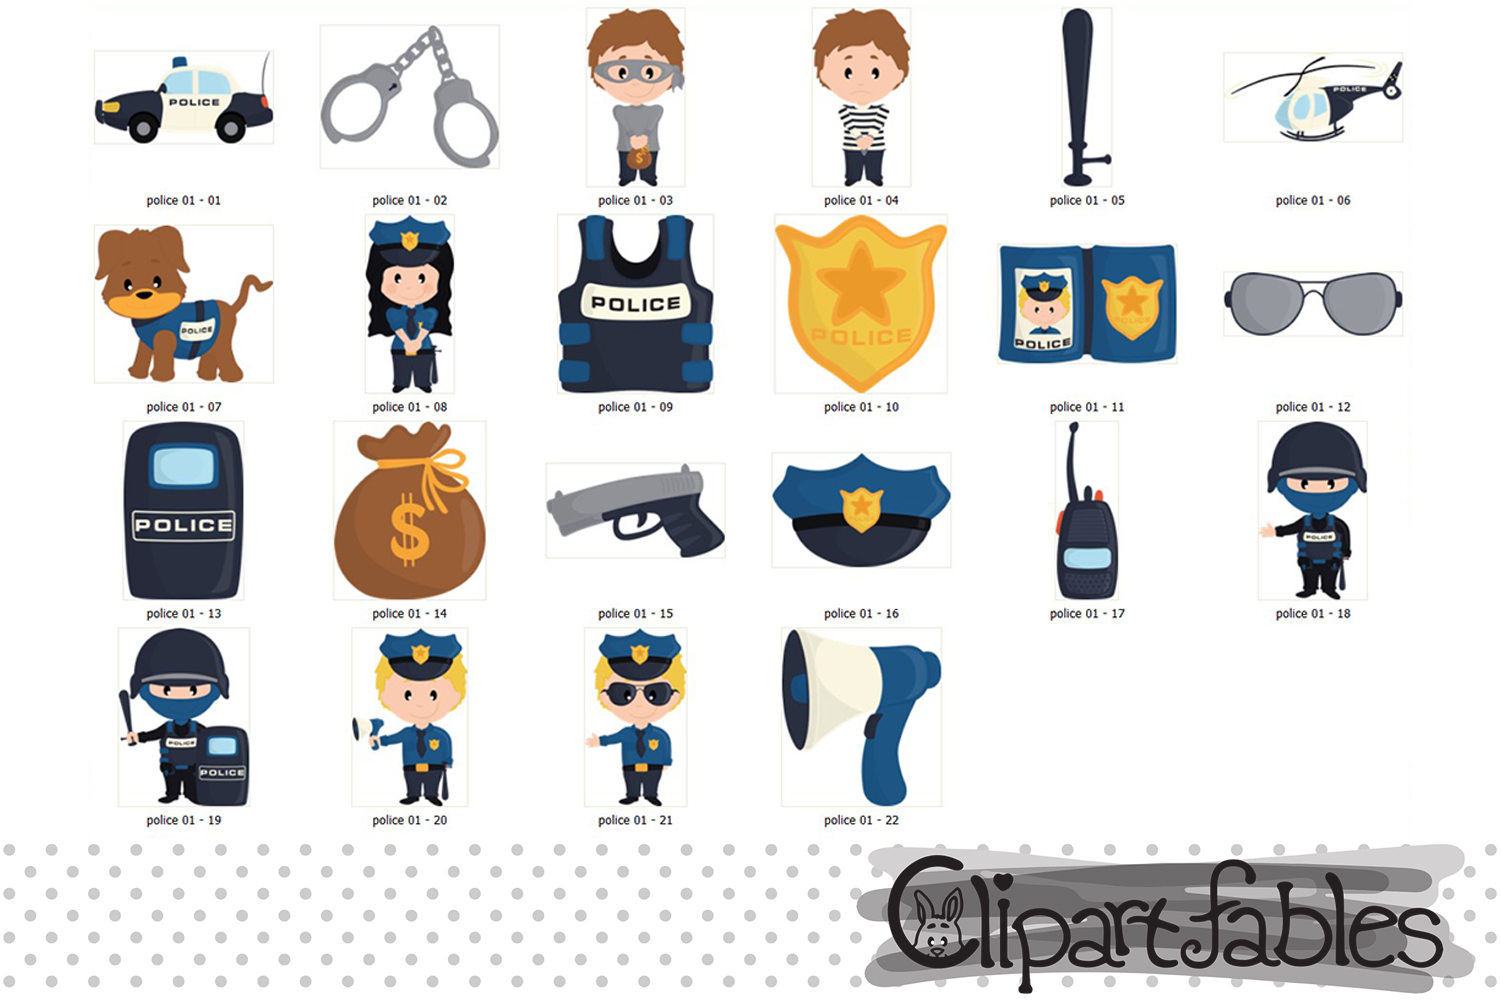 POLICE clipart, Cute policeman and bandit - INSTANT download example image 2